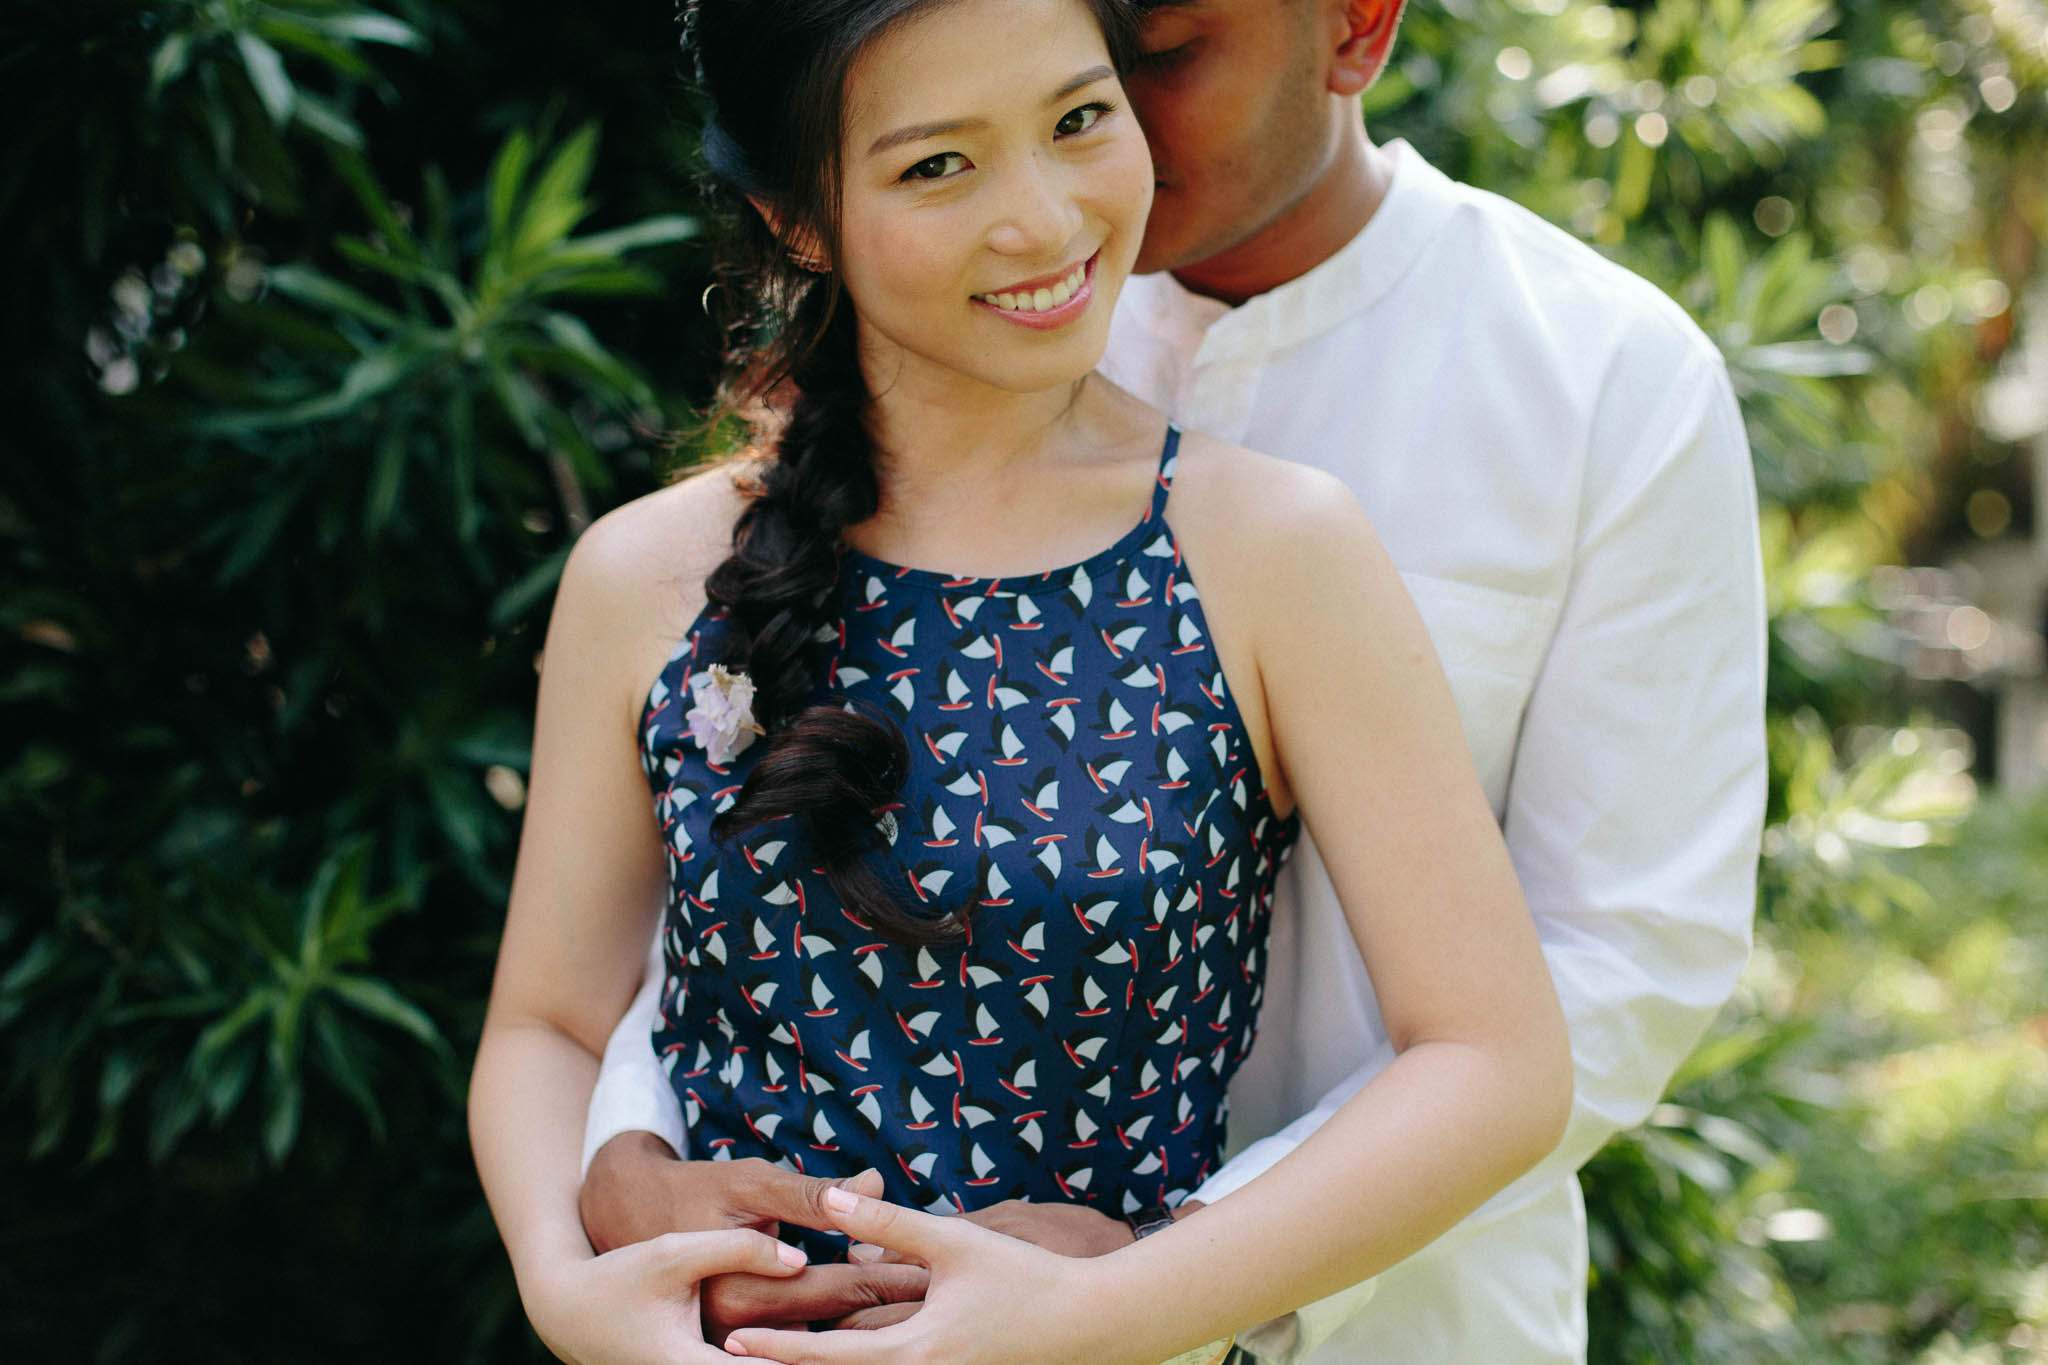 singapore-wedding-photographer-pre-wedding-jonathan-alicia-013.jpg